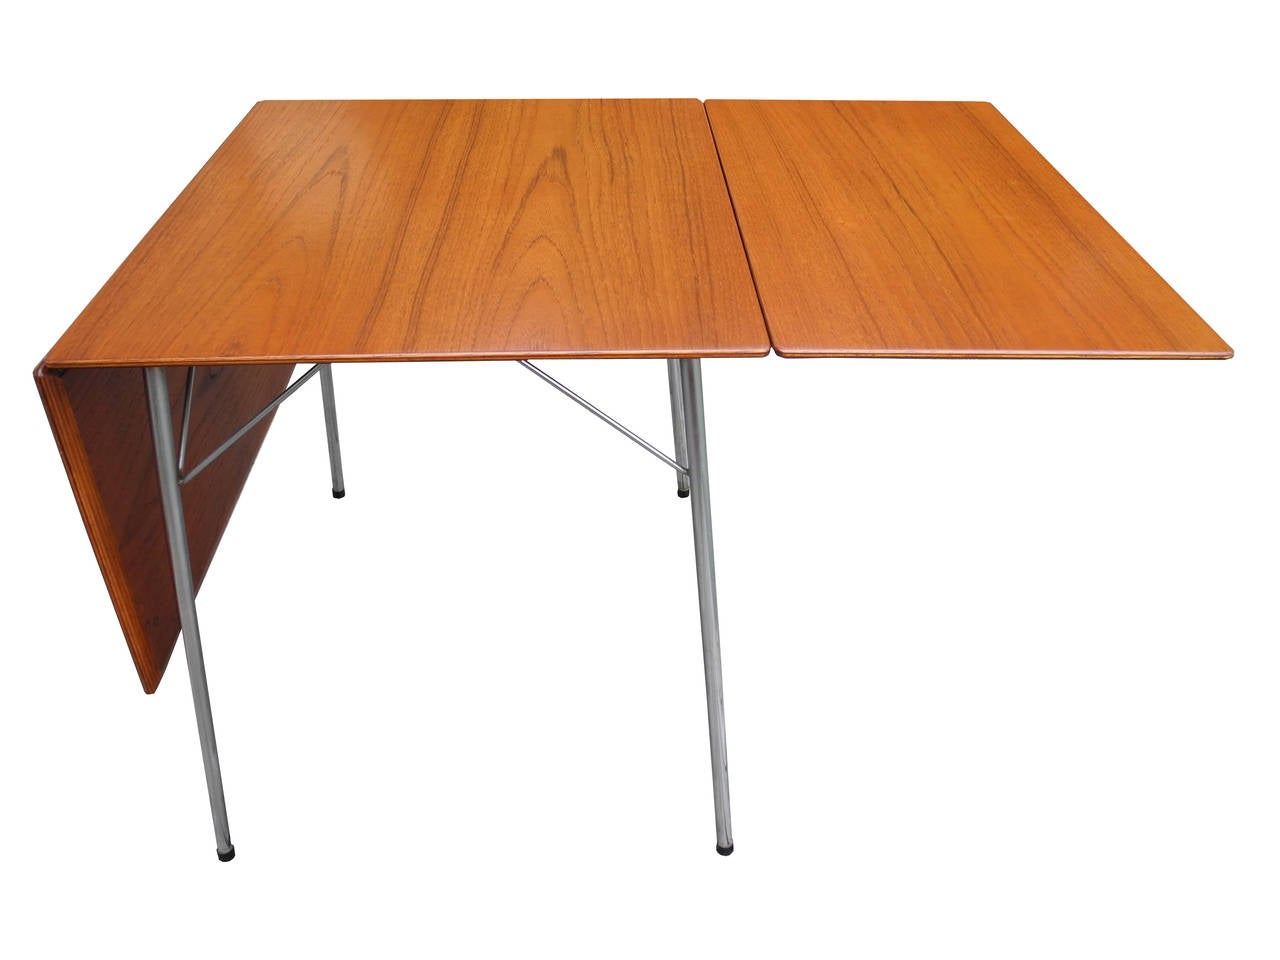 Arne jacobsen folding dining table at 1stdibs for Folding dining table